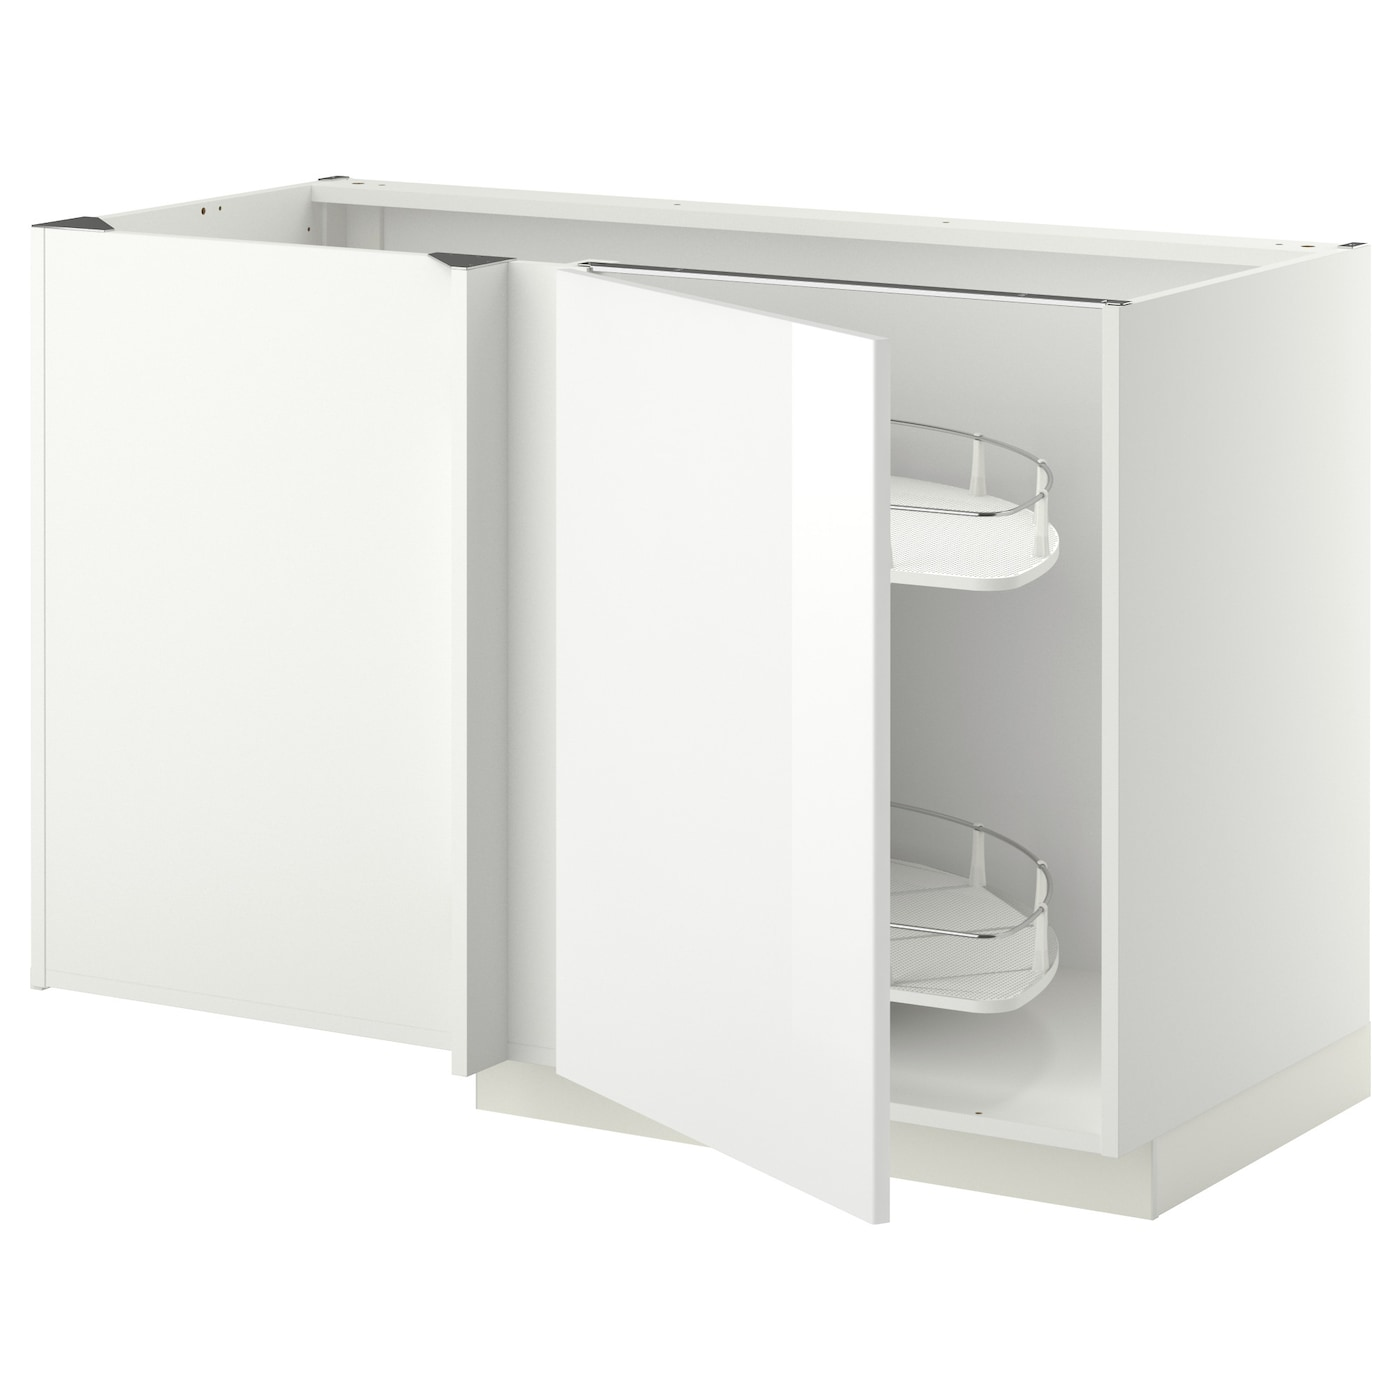 Metod corner base cab w pull out fitting white ringhult for Kitchen cabinets ikea